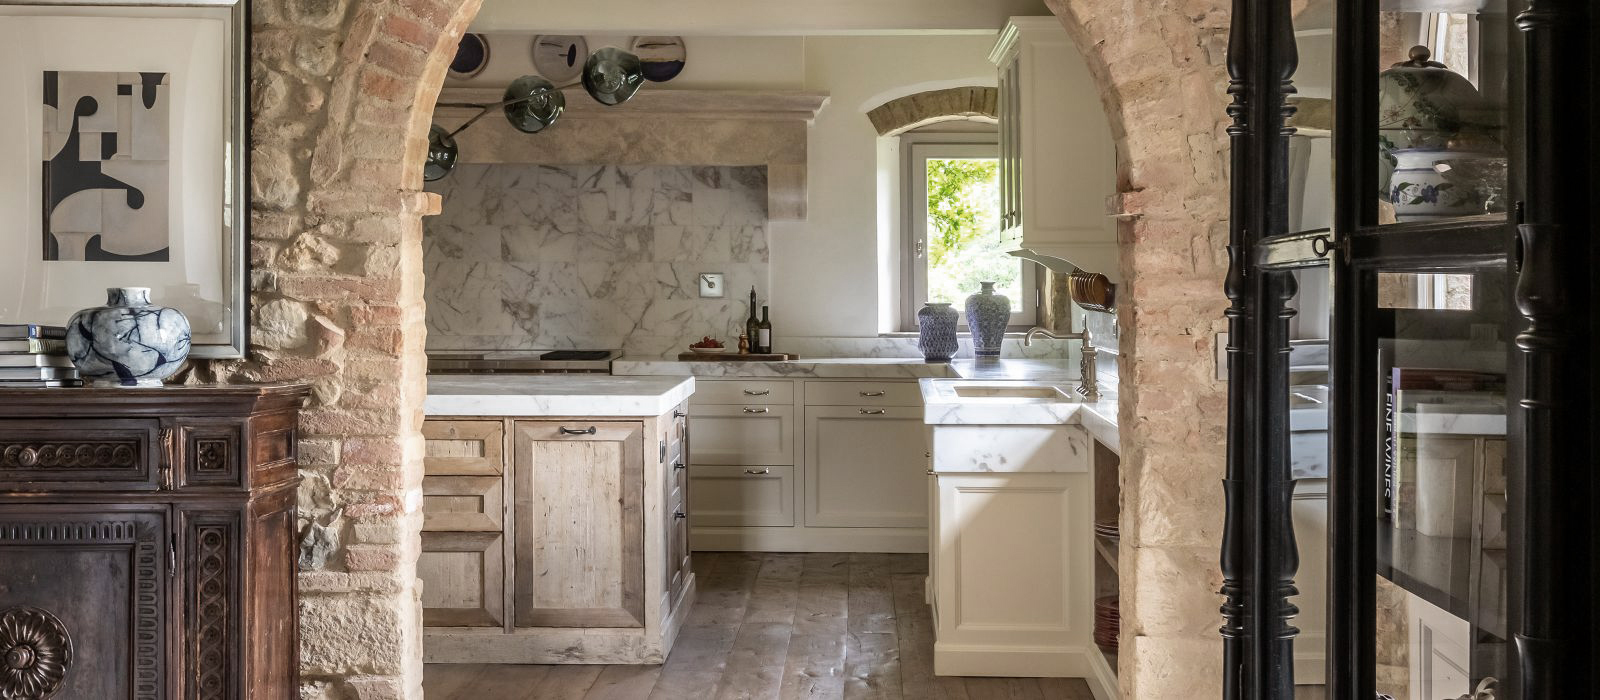 Restored kitchen with brickwork archway